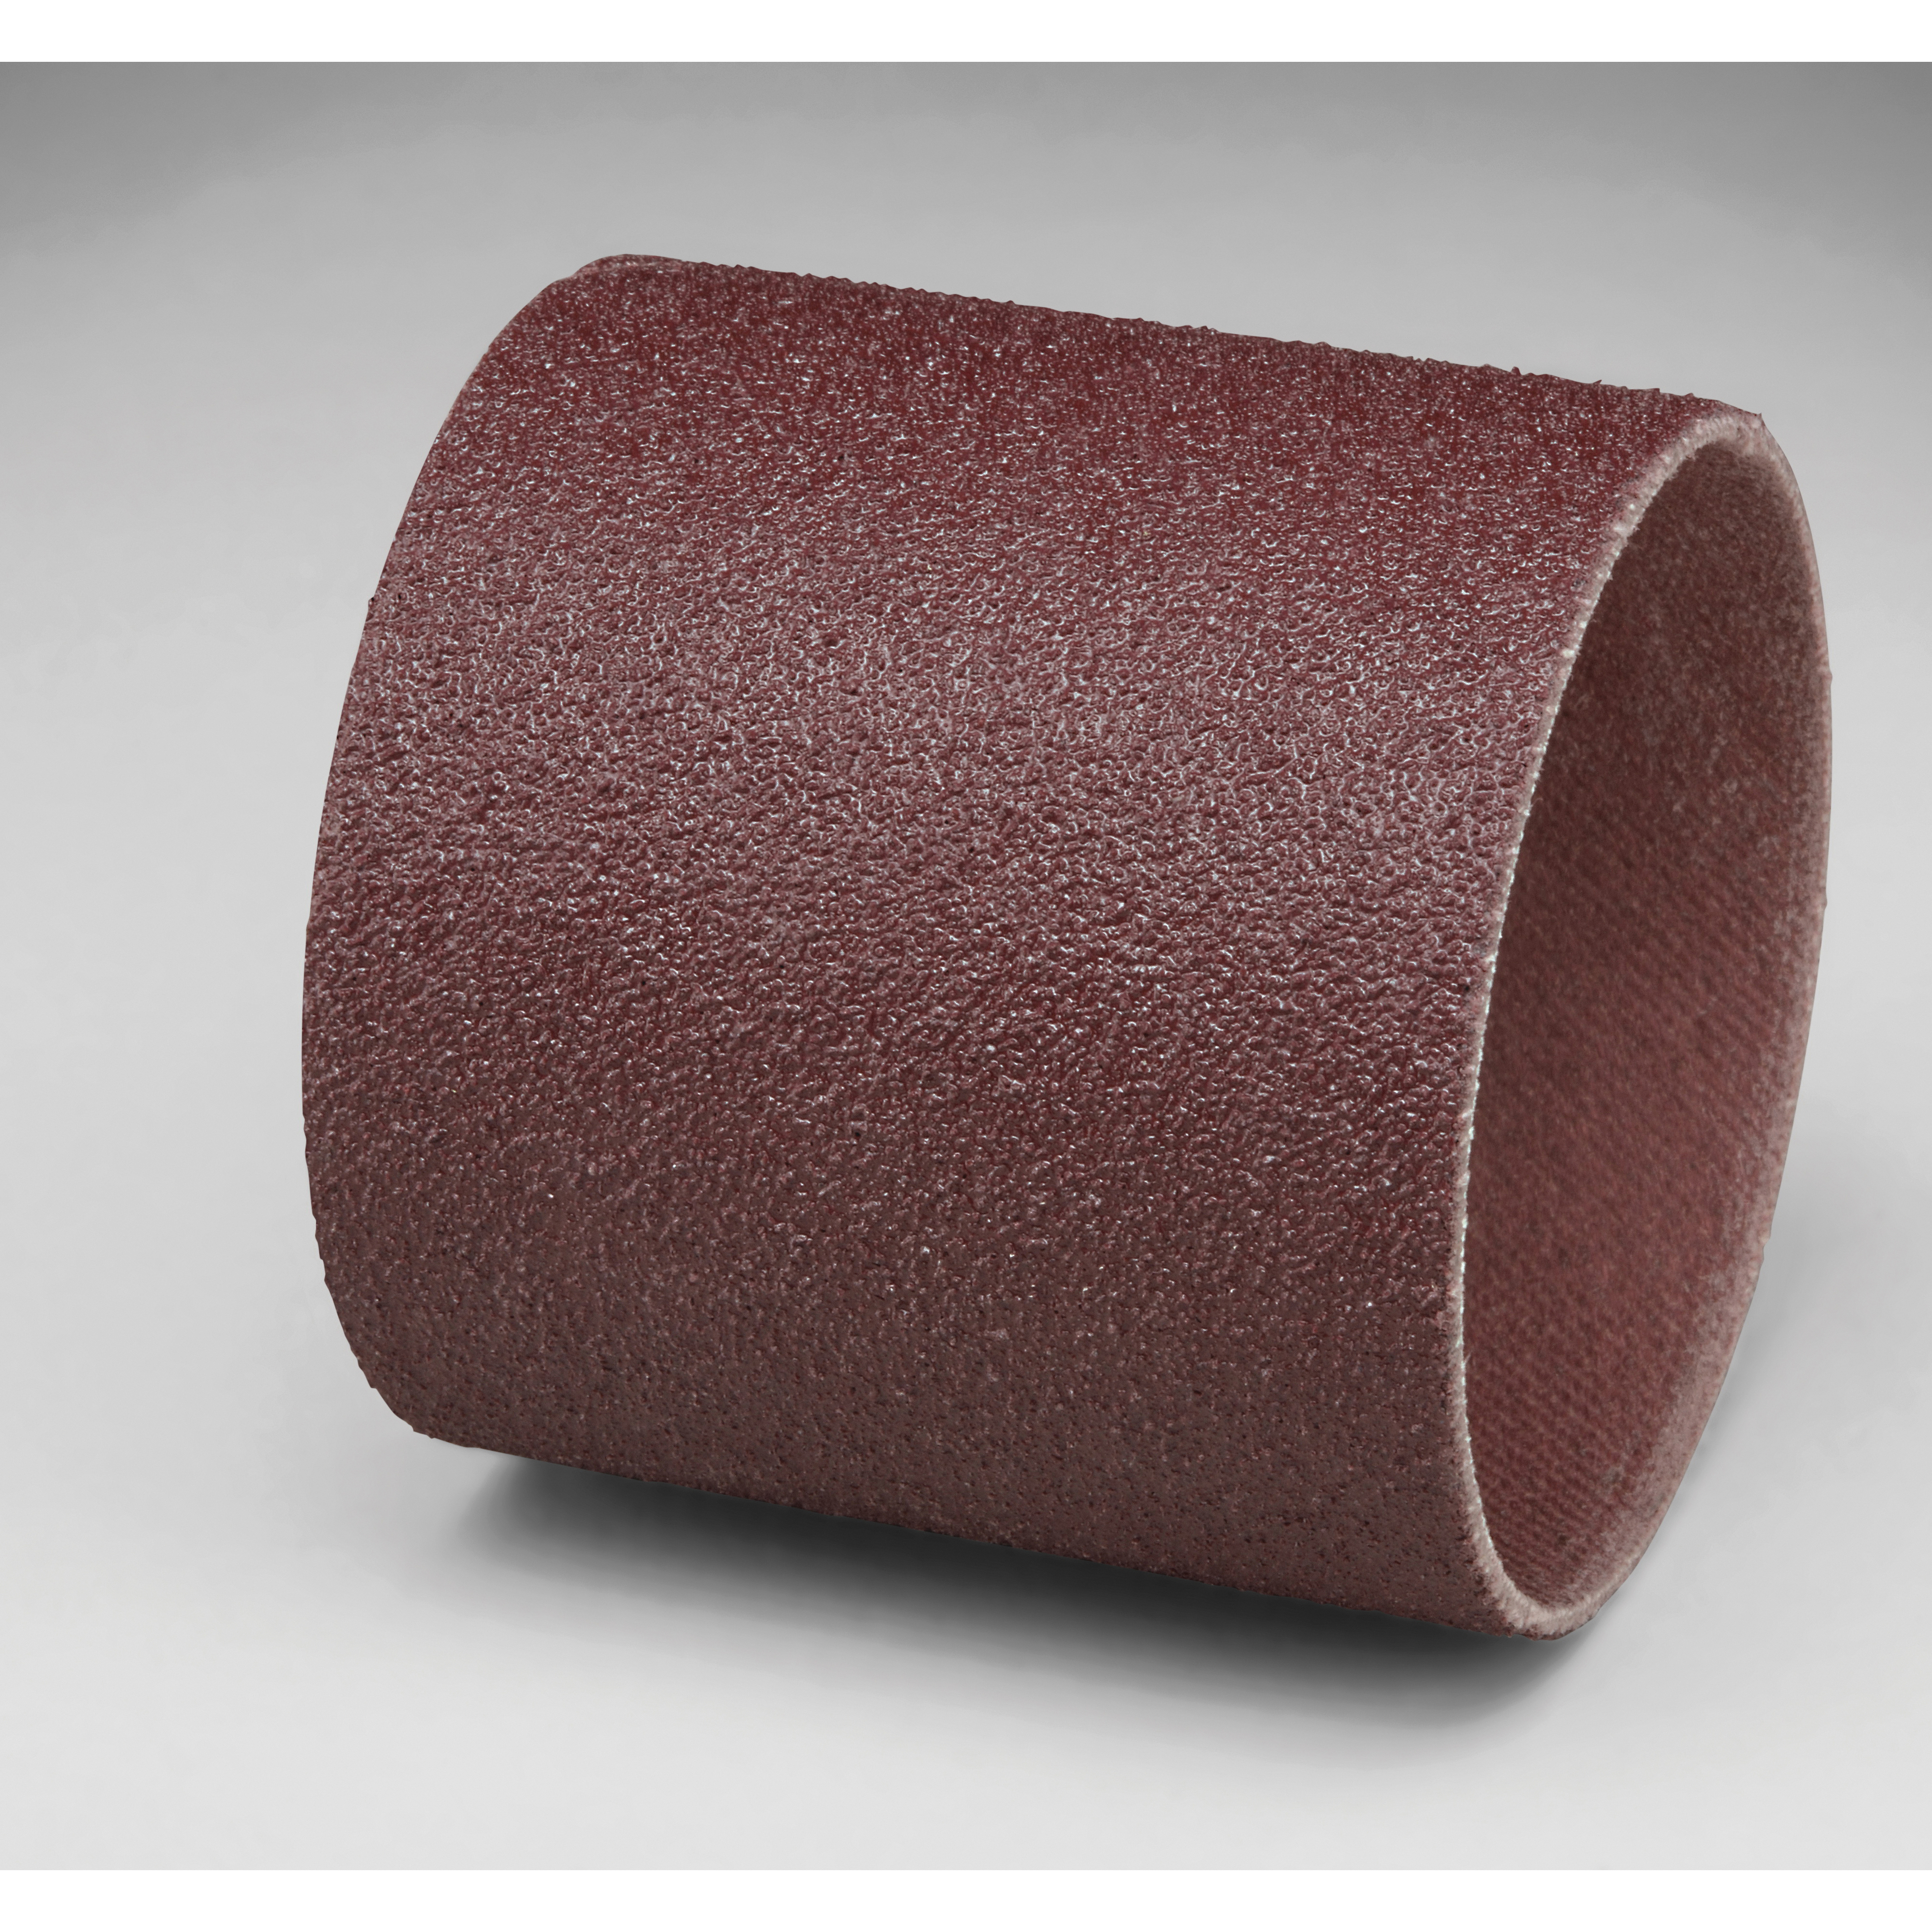 3M™ Evenrun™ 051144-97611 341D Coated Band, 3 in Dia x 1 in L Band, 50 Grit, Coarse Grade, Aluminum Oxide Abrasive